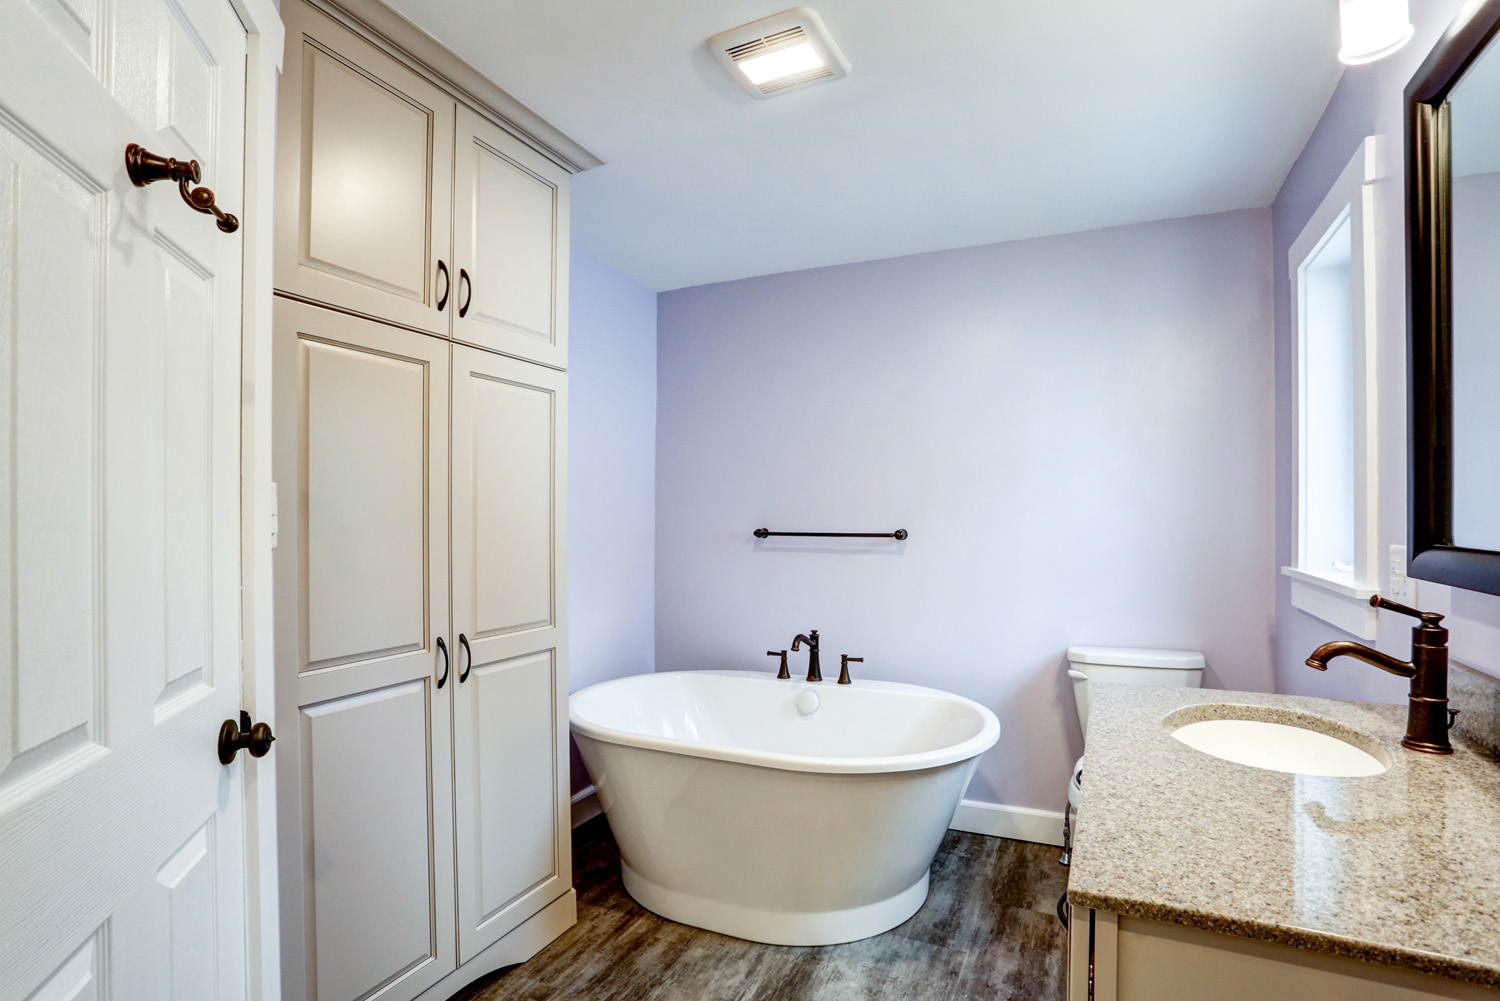 Bathroom with freestanding tub in Millersville PA